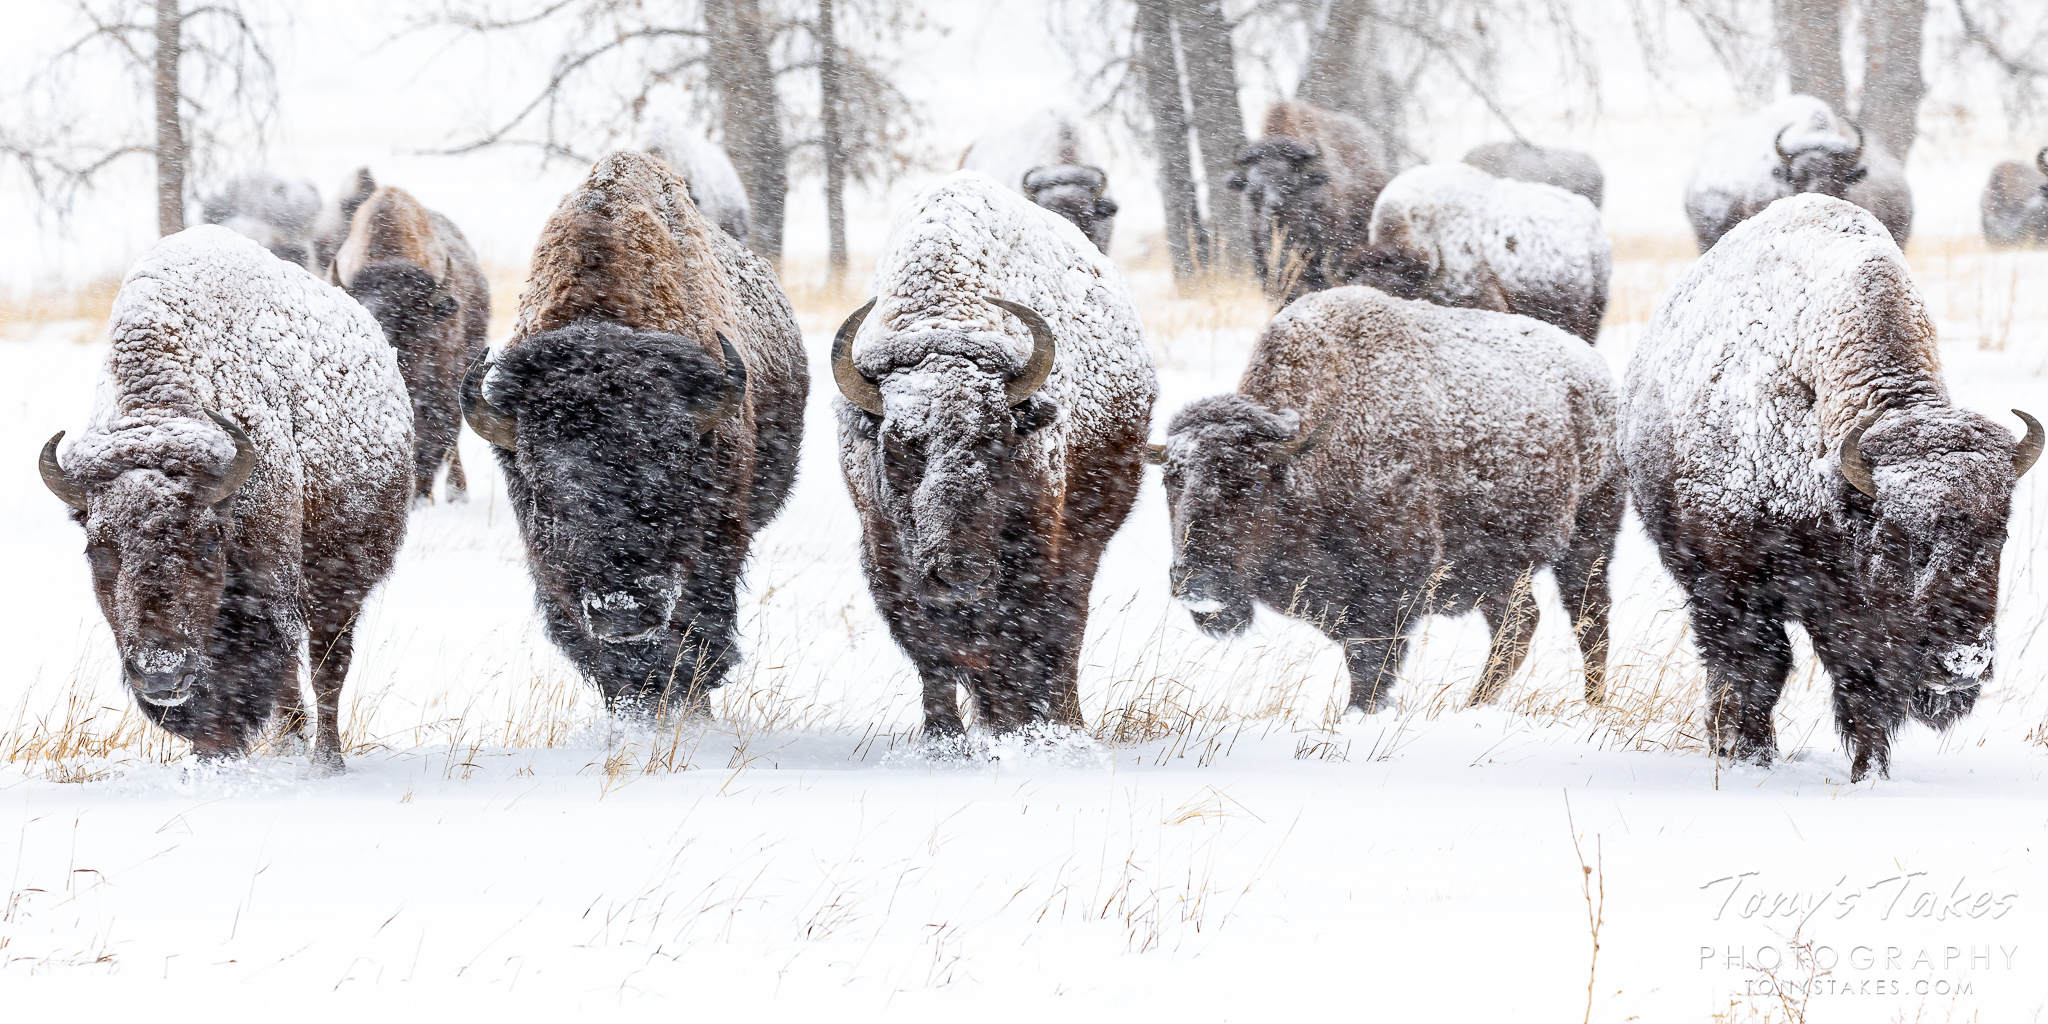 Bison herd marches into the storm